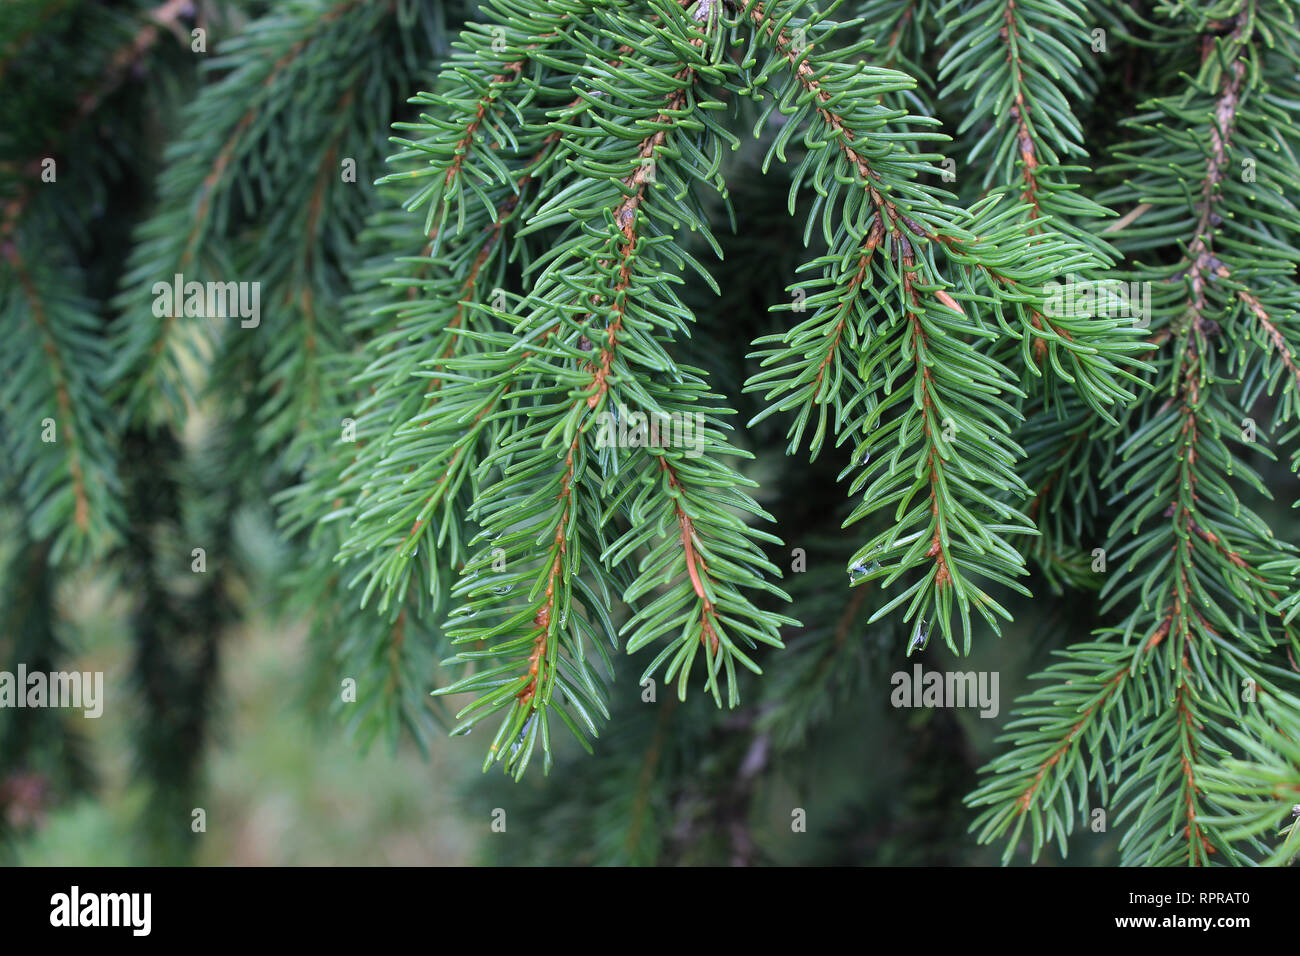 Branch of Picea abies (Norway spruce) Stock Photo